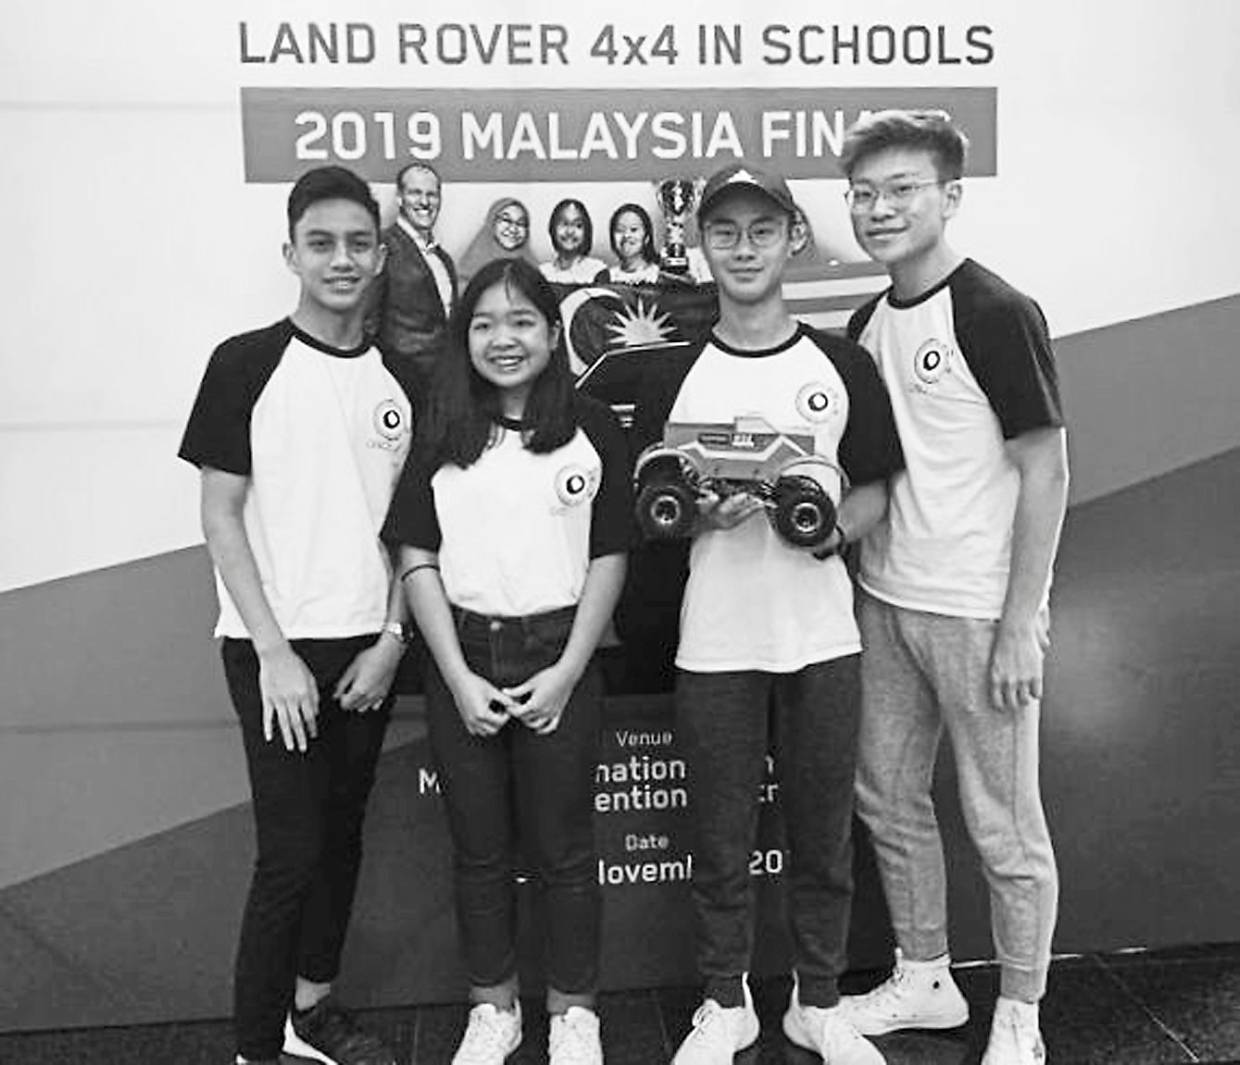 KTJ students took part in the Land Rover 4x4 Schools Challenge which required participants to design and build a radio controlled 4x4 vehicle.